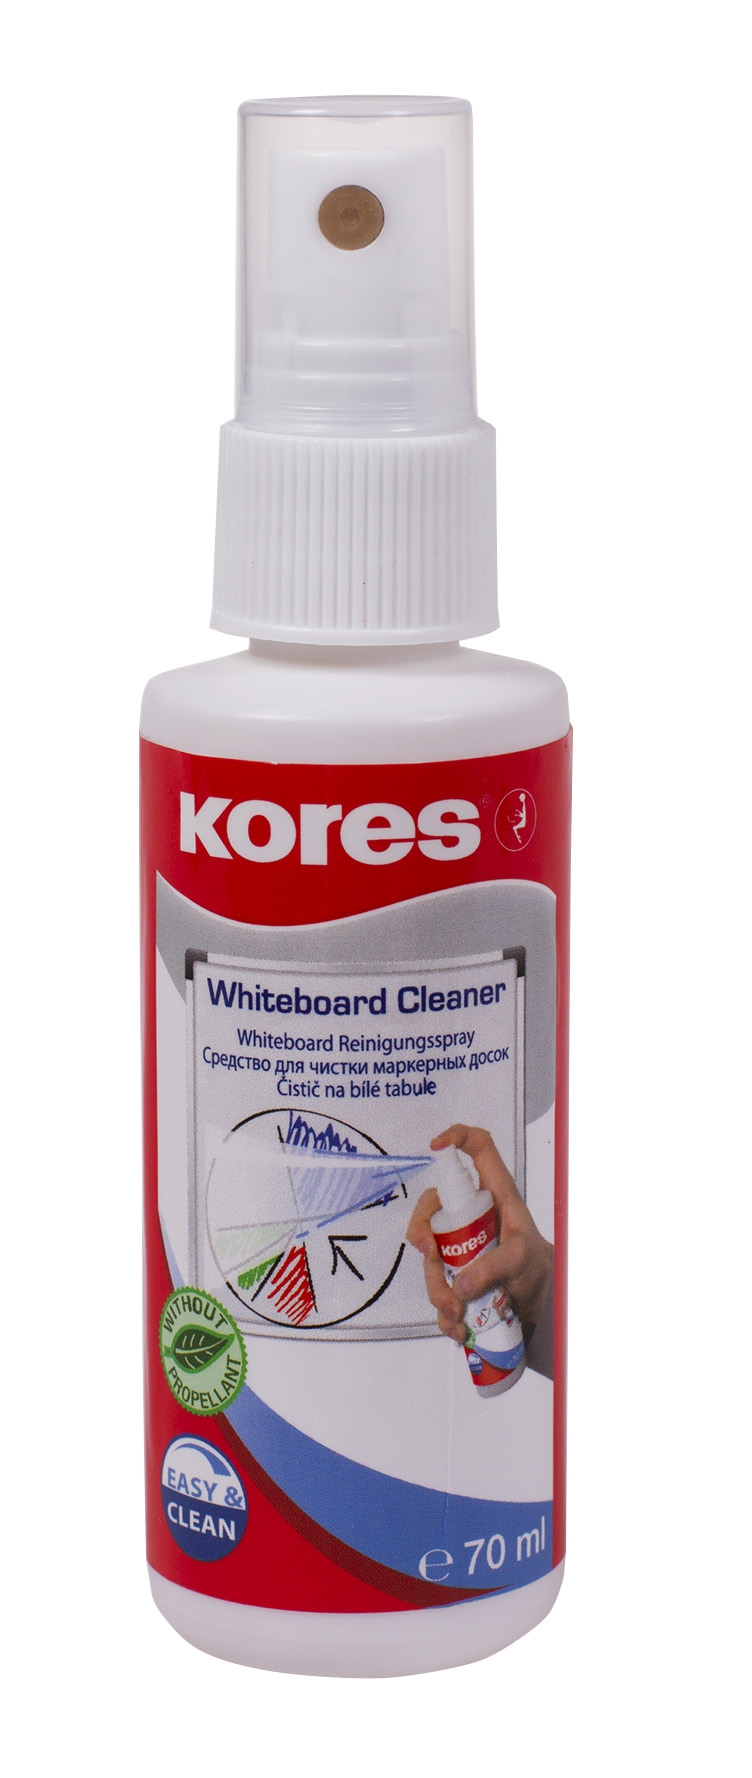 the whiteboard cleaner report Whiteboard frequently asked questions click a question to reveal the answer about dry erase whiteboards whiteboard cleaning and maintenance questions.